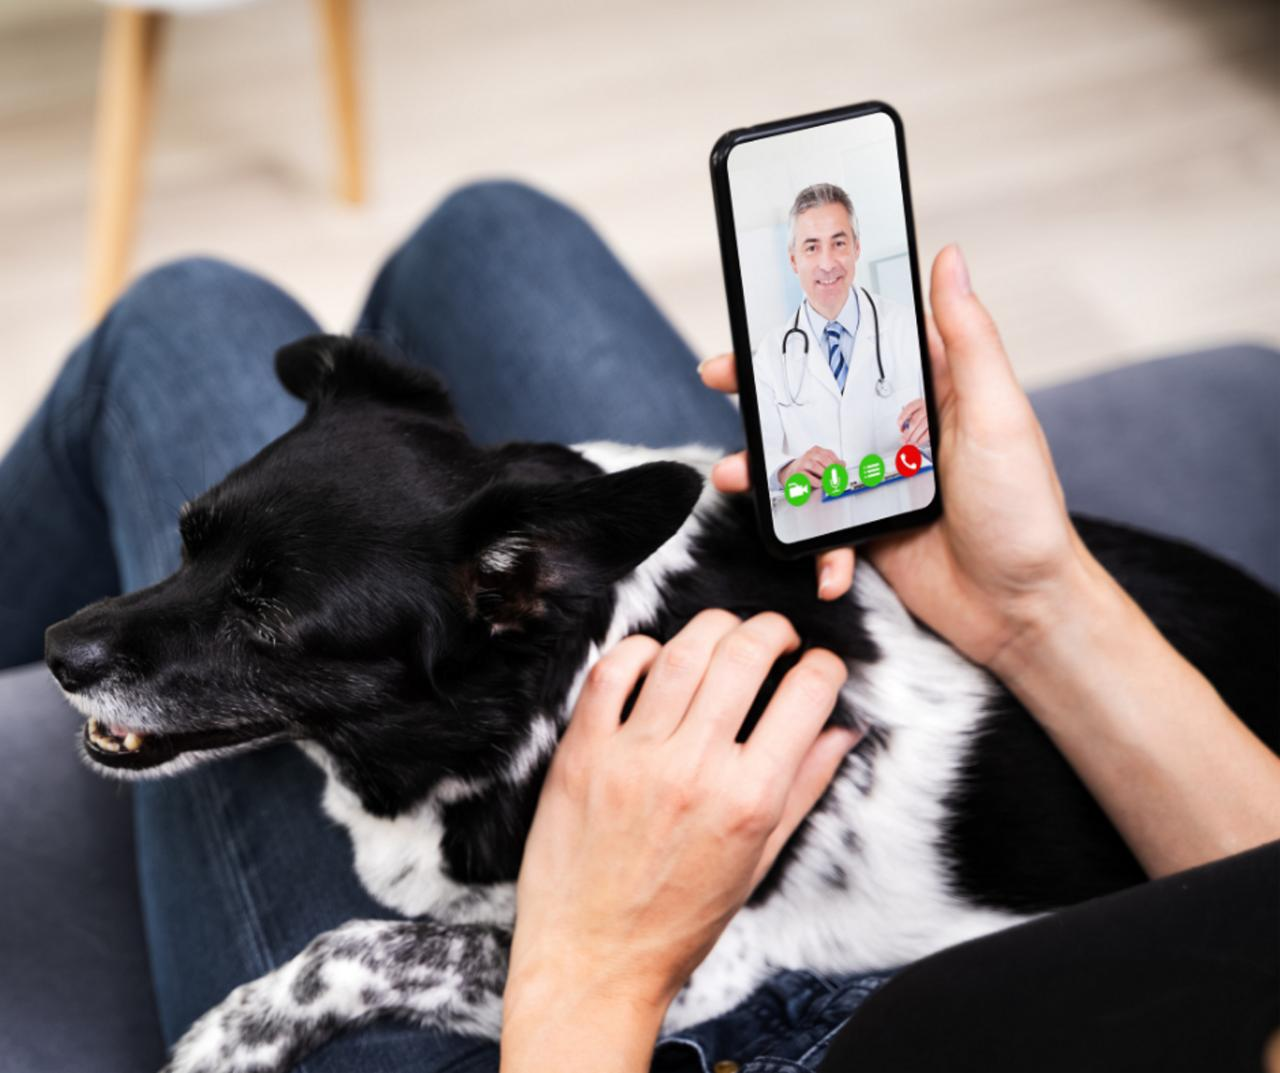 Some insurance companies offer video consultations with doctors